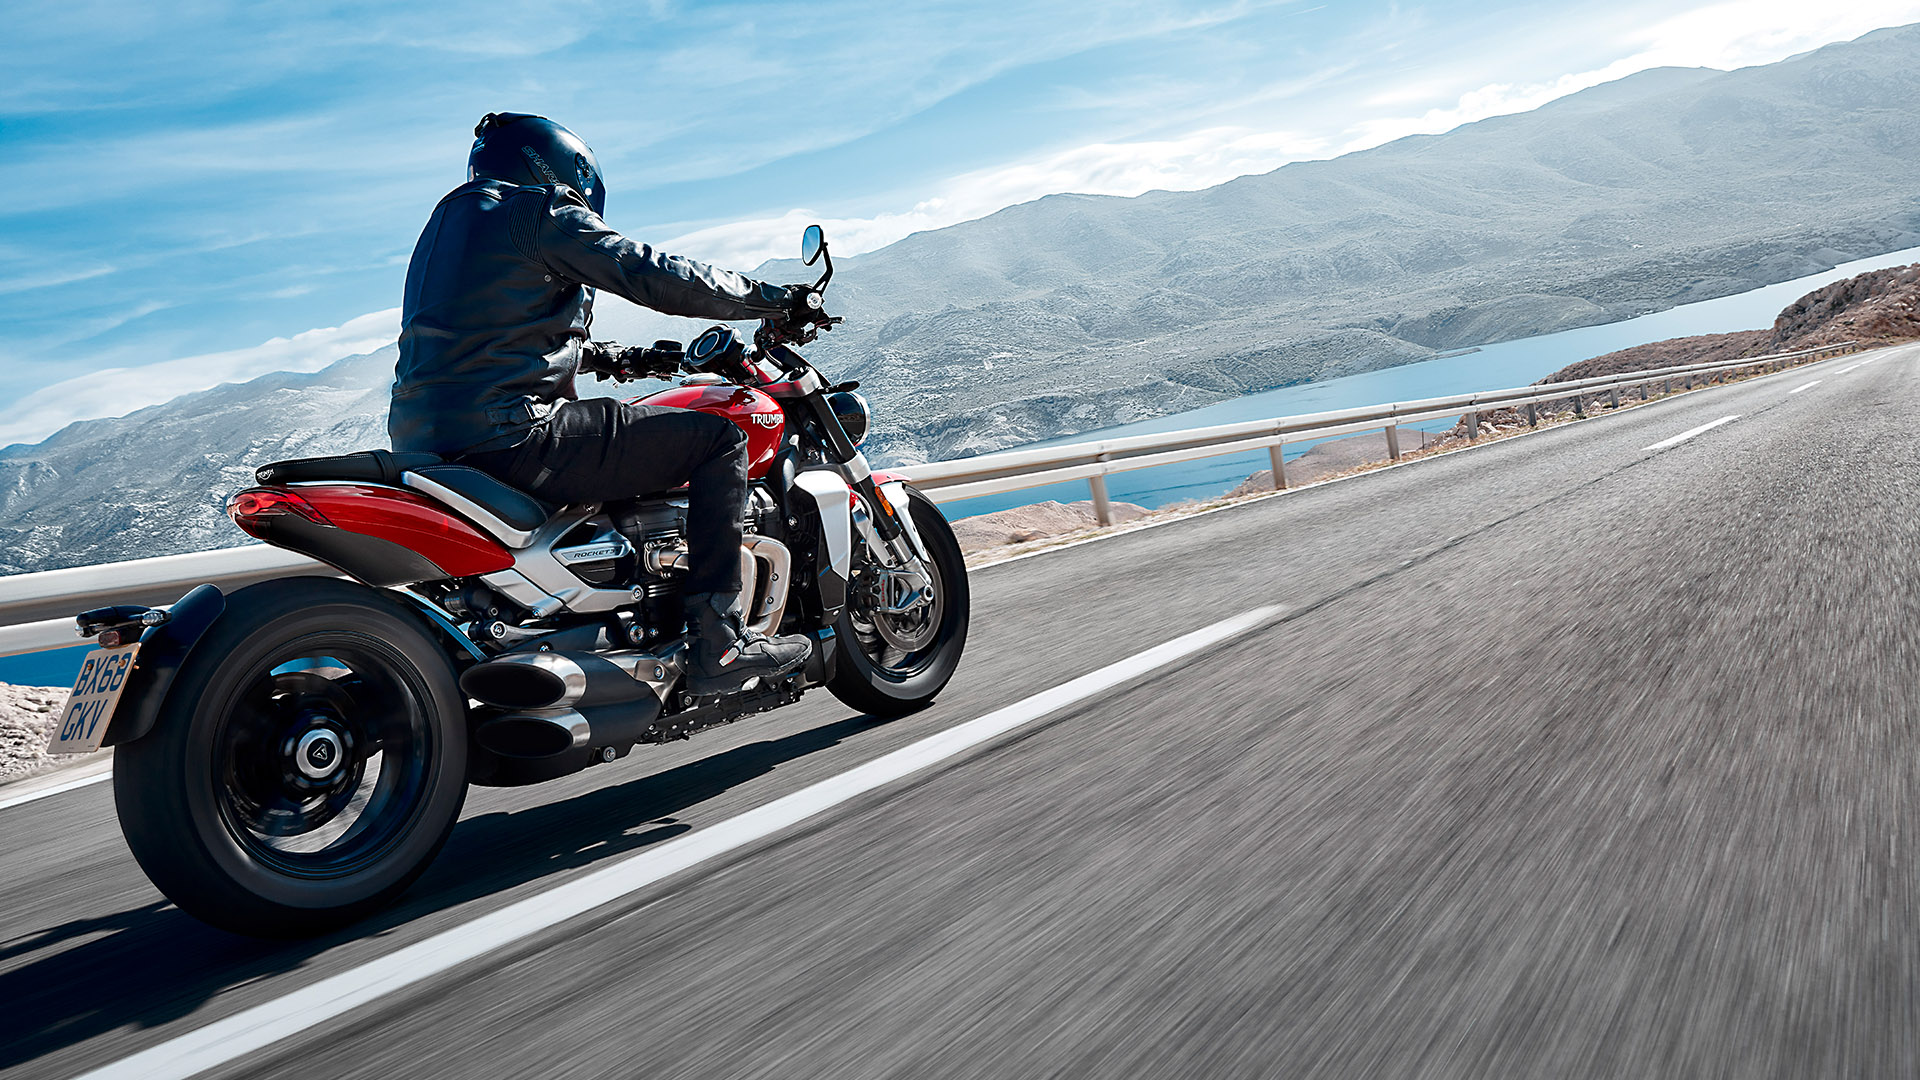 A rider on the Triumph Rocket 3 R travelling down a straight road